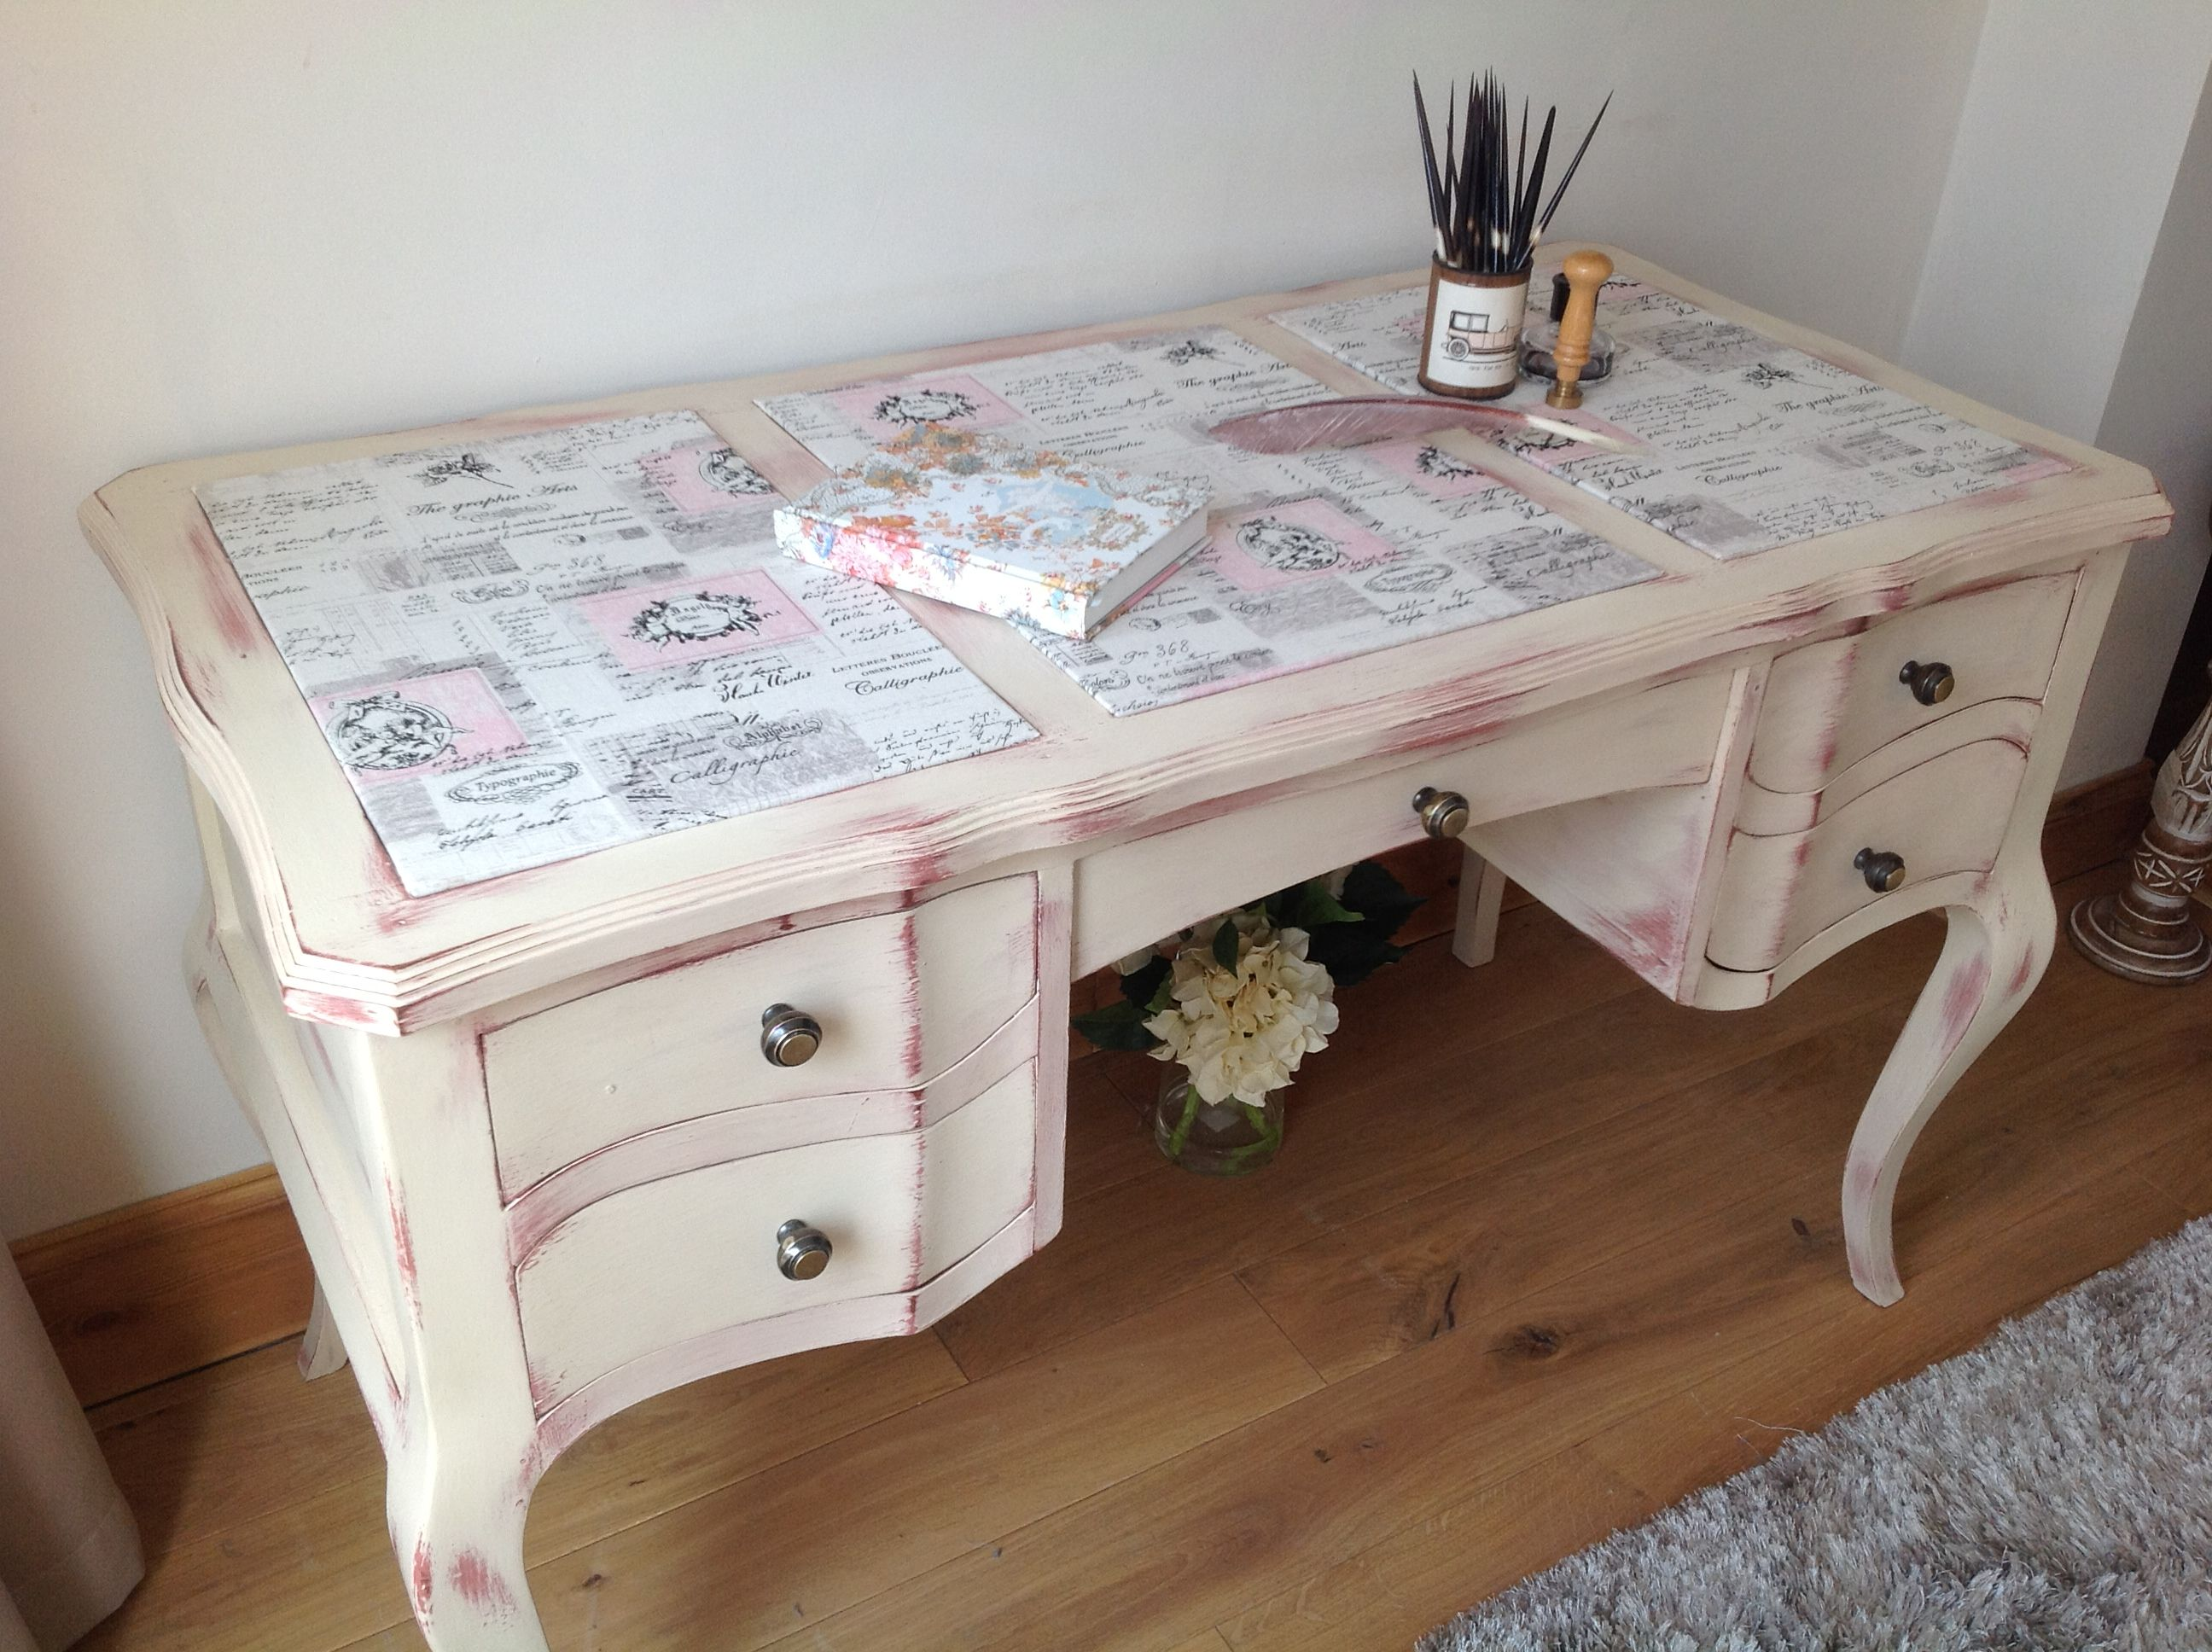 A stylish French style Shabby Chic Desk inlaid with fabric